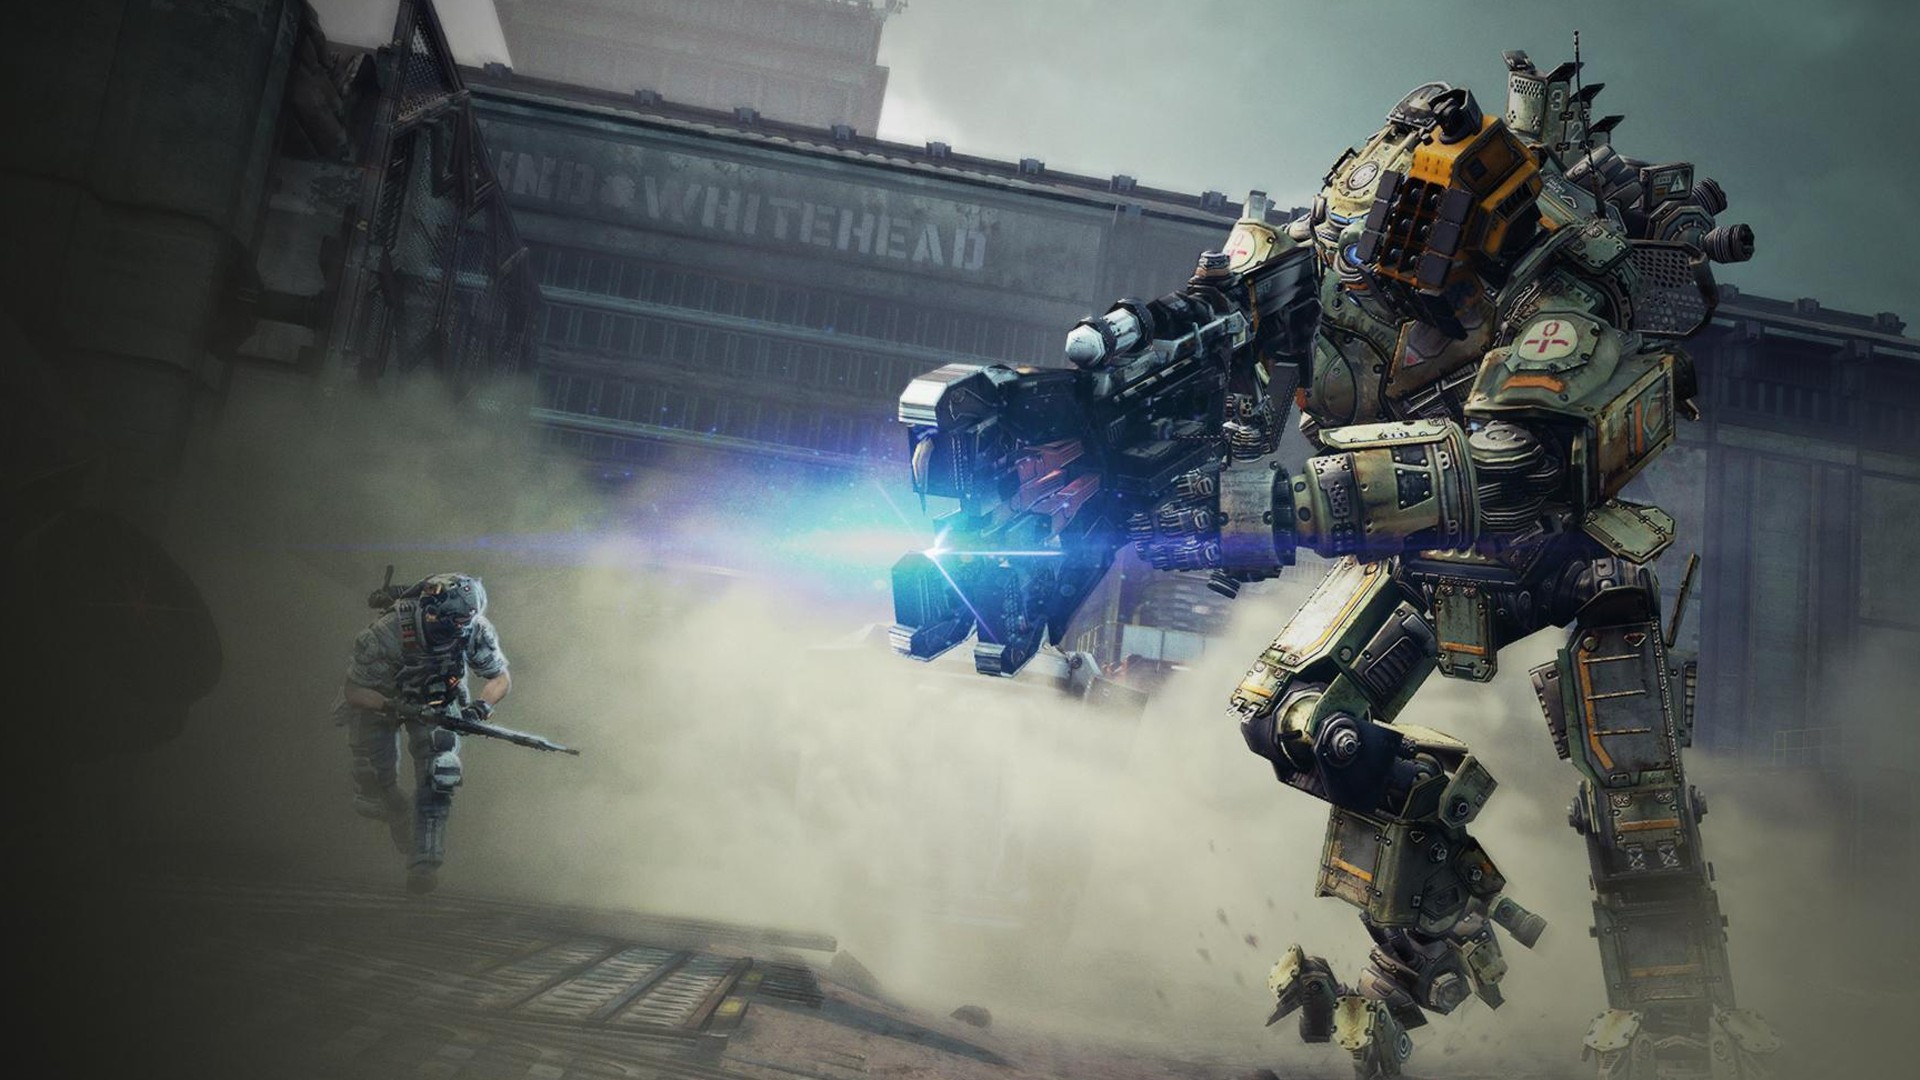 Titanfall 2 Wallpapers (20 Wallpapers)